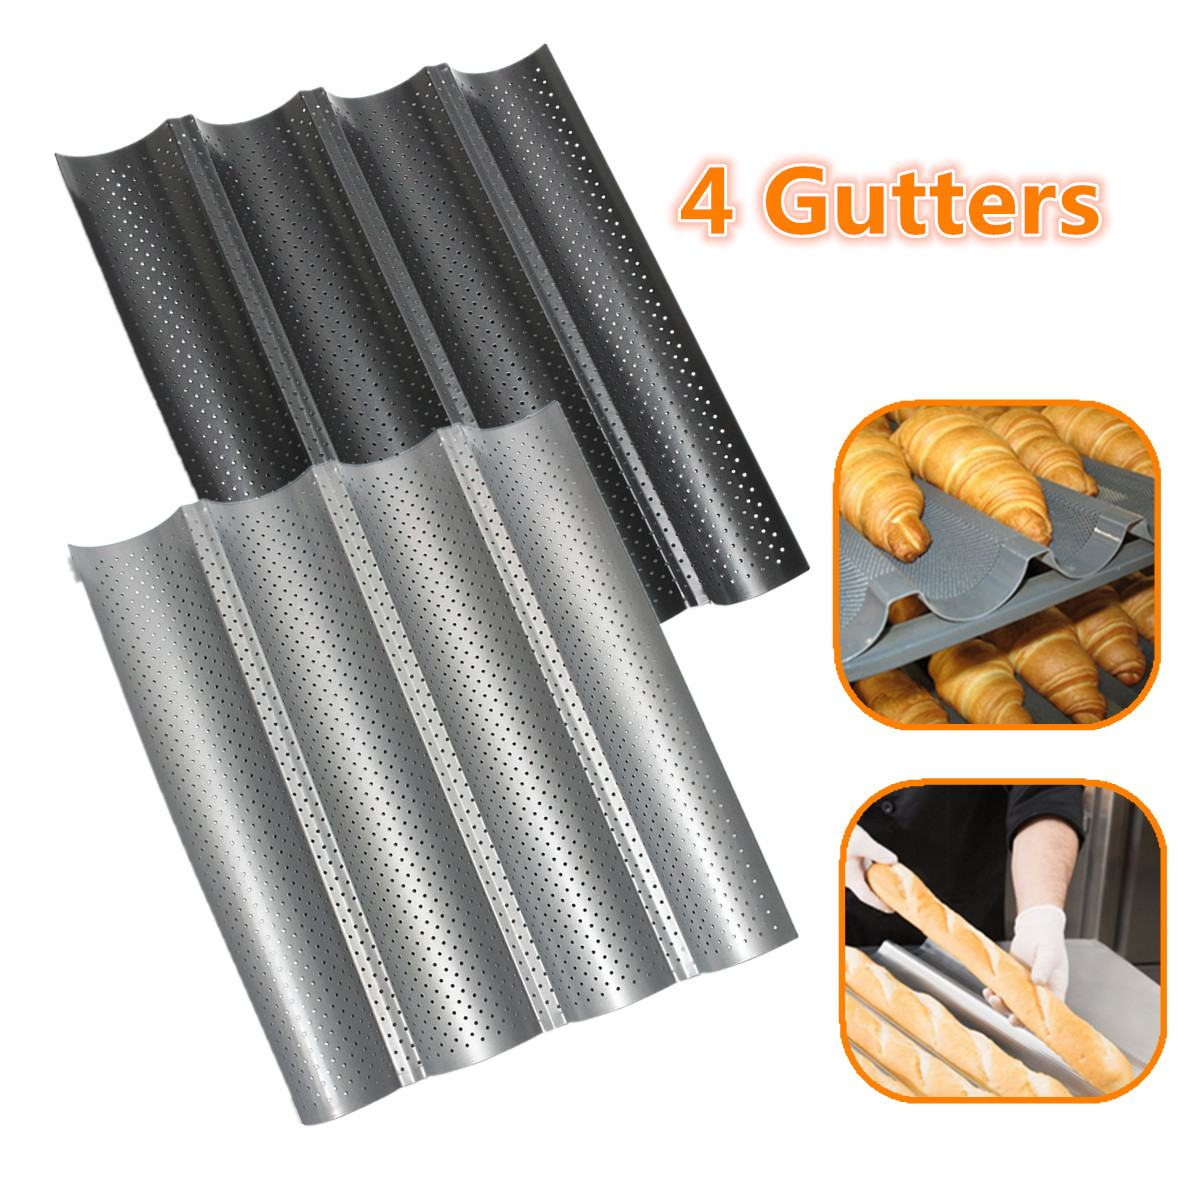 Non-stick Perforated Baguette Pan French Bread Pan Wave Loaf Bake Bakeware Mould Kitchen Appliance Parts